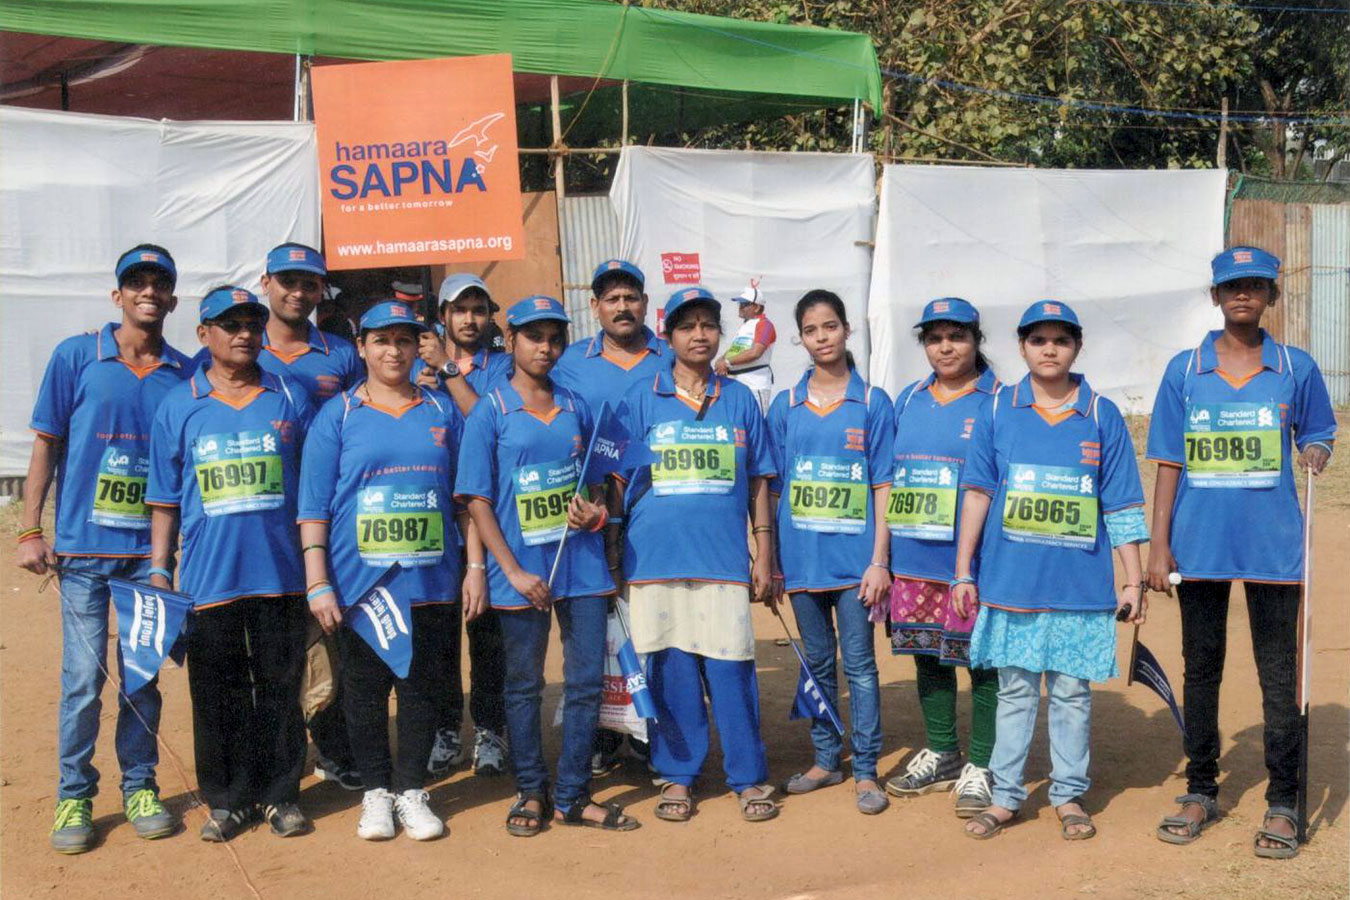 Staff and beneficiaries under the Hamaara Sapna Banner at the Mumbai Marathon (January, 2015)